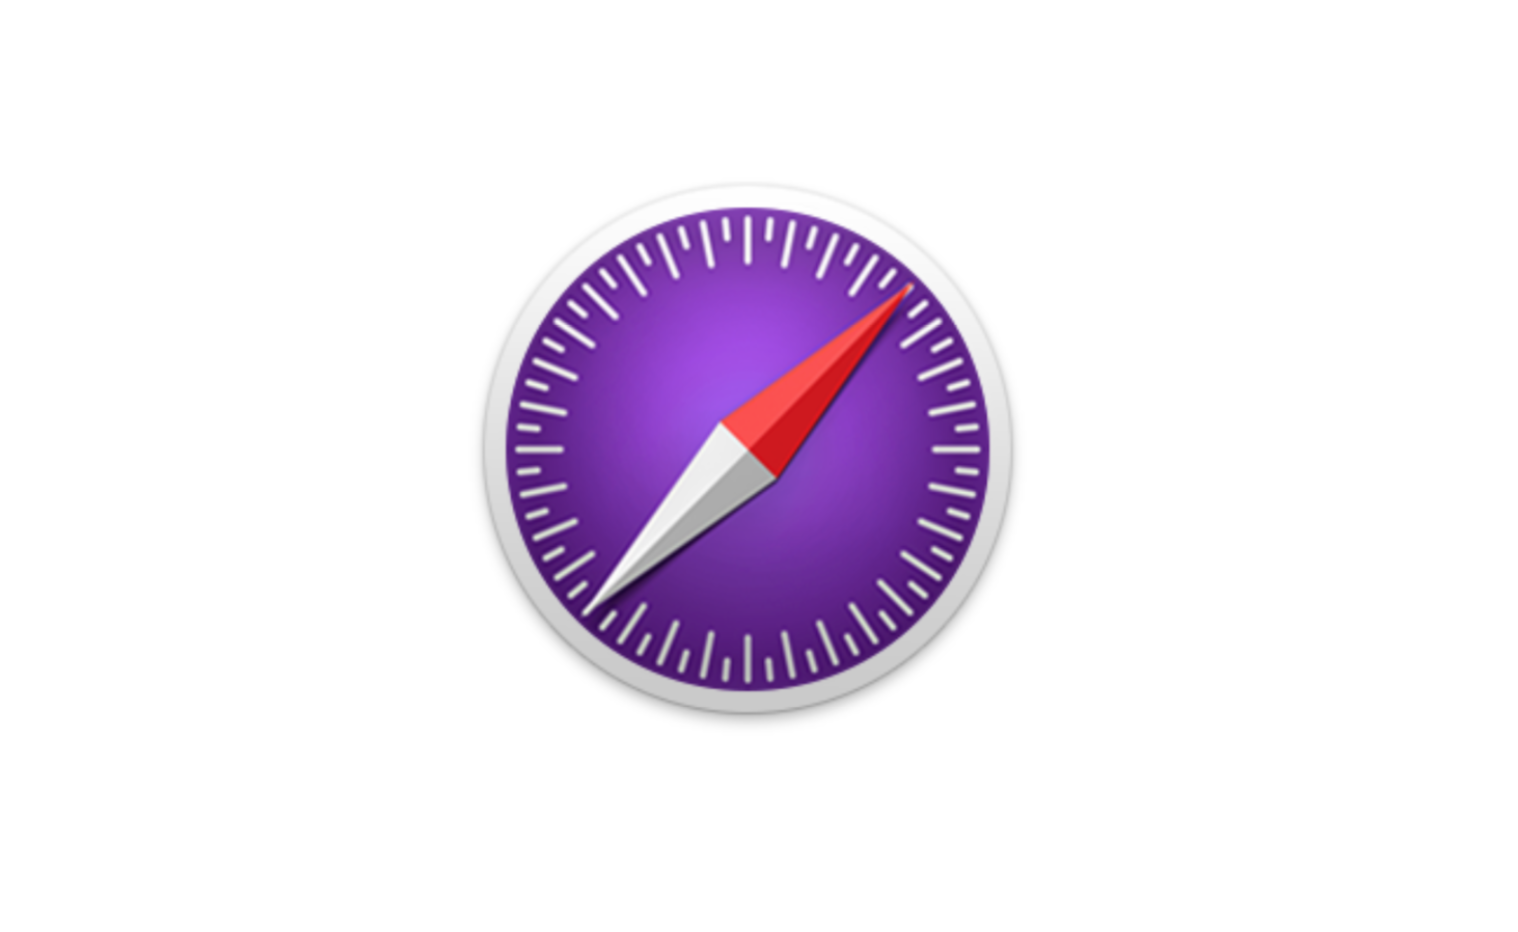 Apple's experimental browser Safari technology preview gets new update